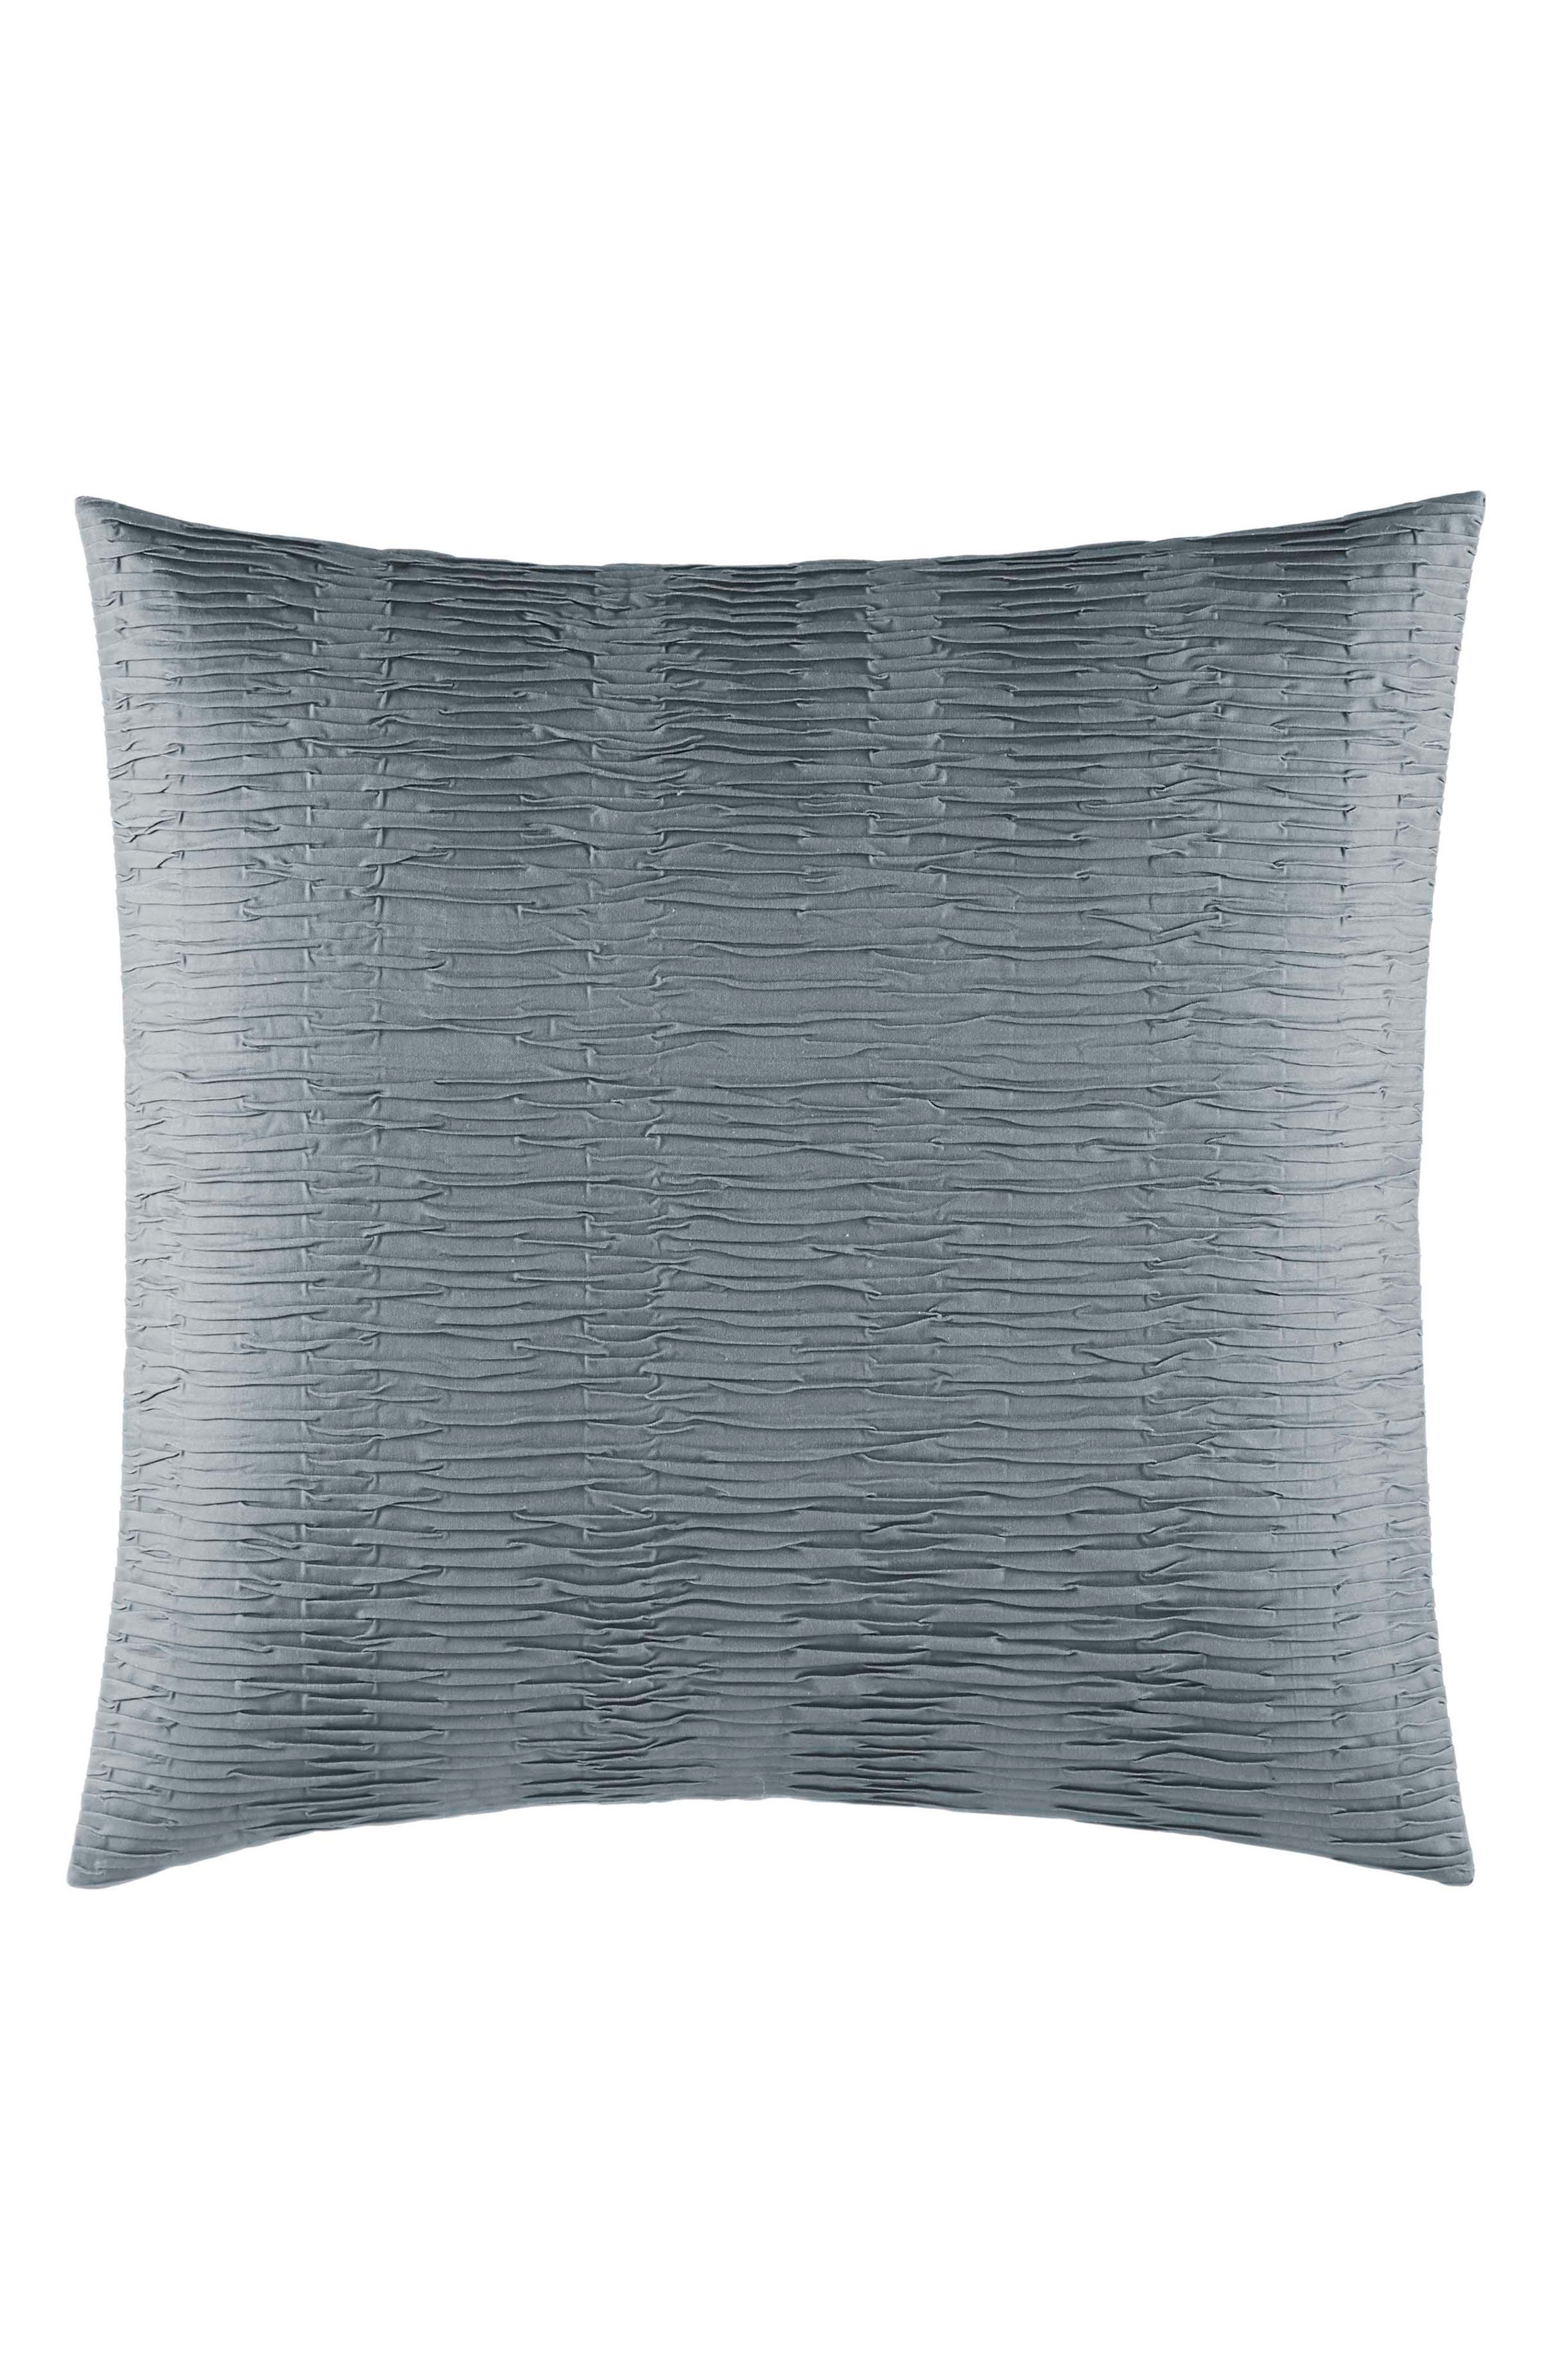 Marble Shibori Textured Pleat Euro Sham,                             Main thumbnail 1, color,                             DARK SILVER BLUE